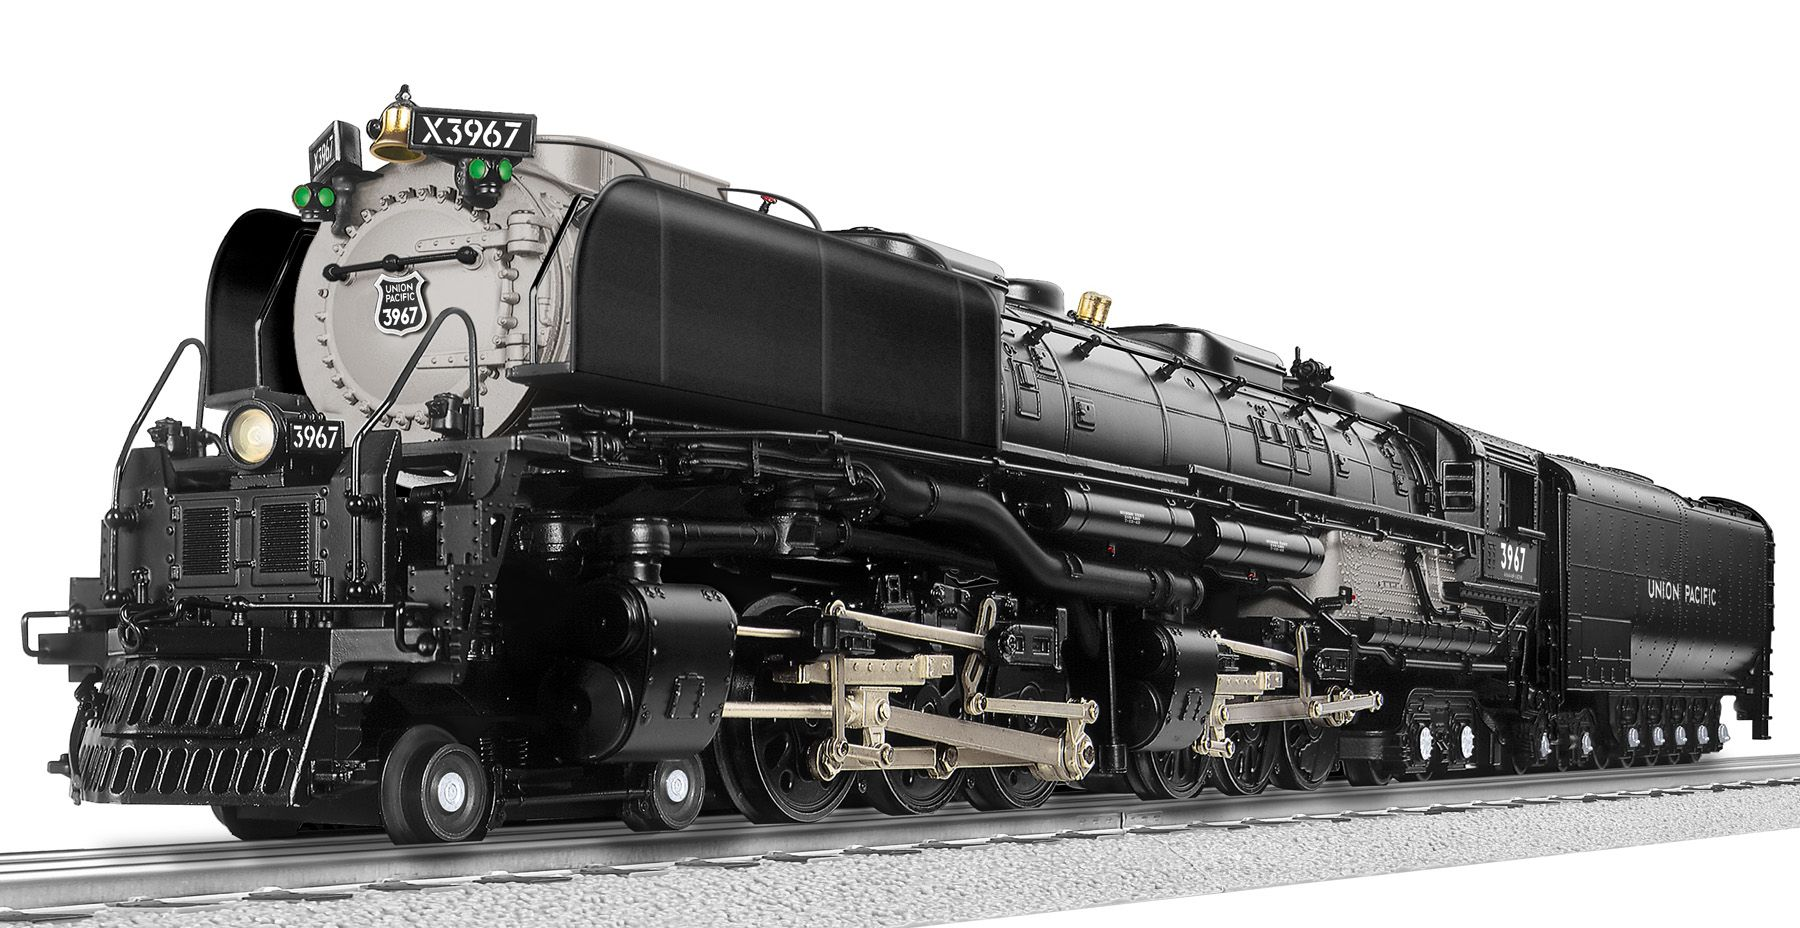 Union Pacific 4 6 6 4 Legacy Challenger Coal Fired 3967